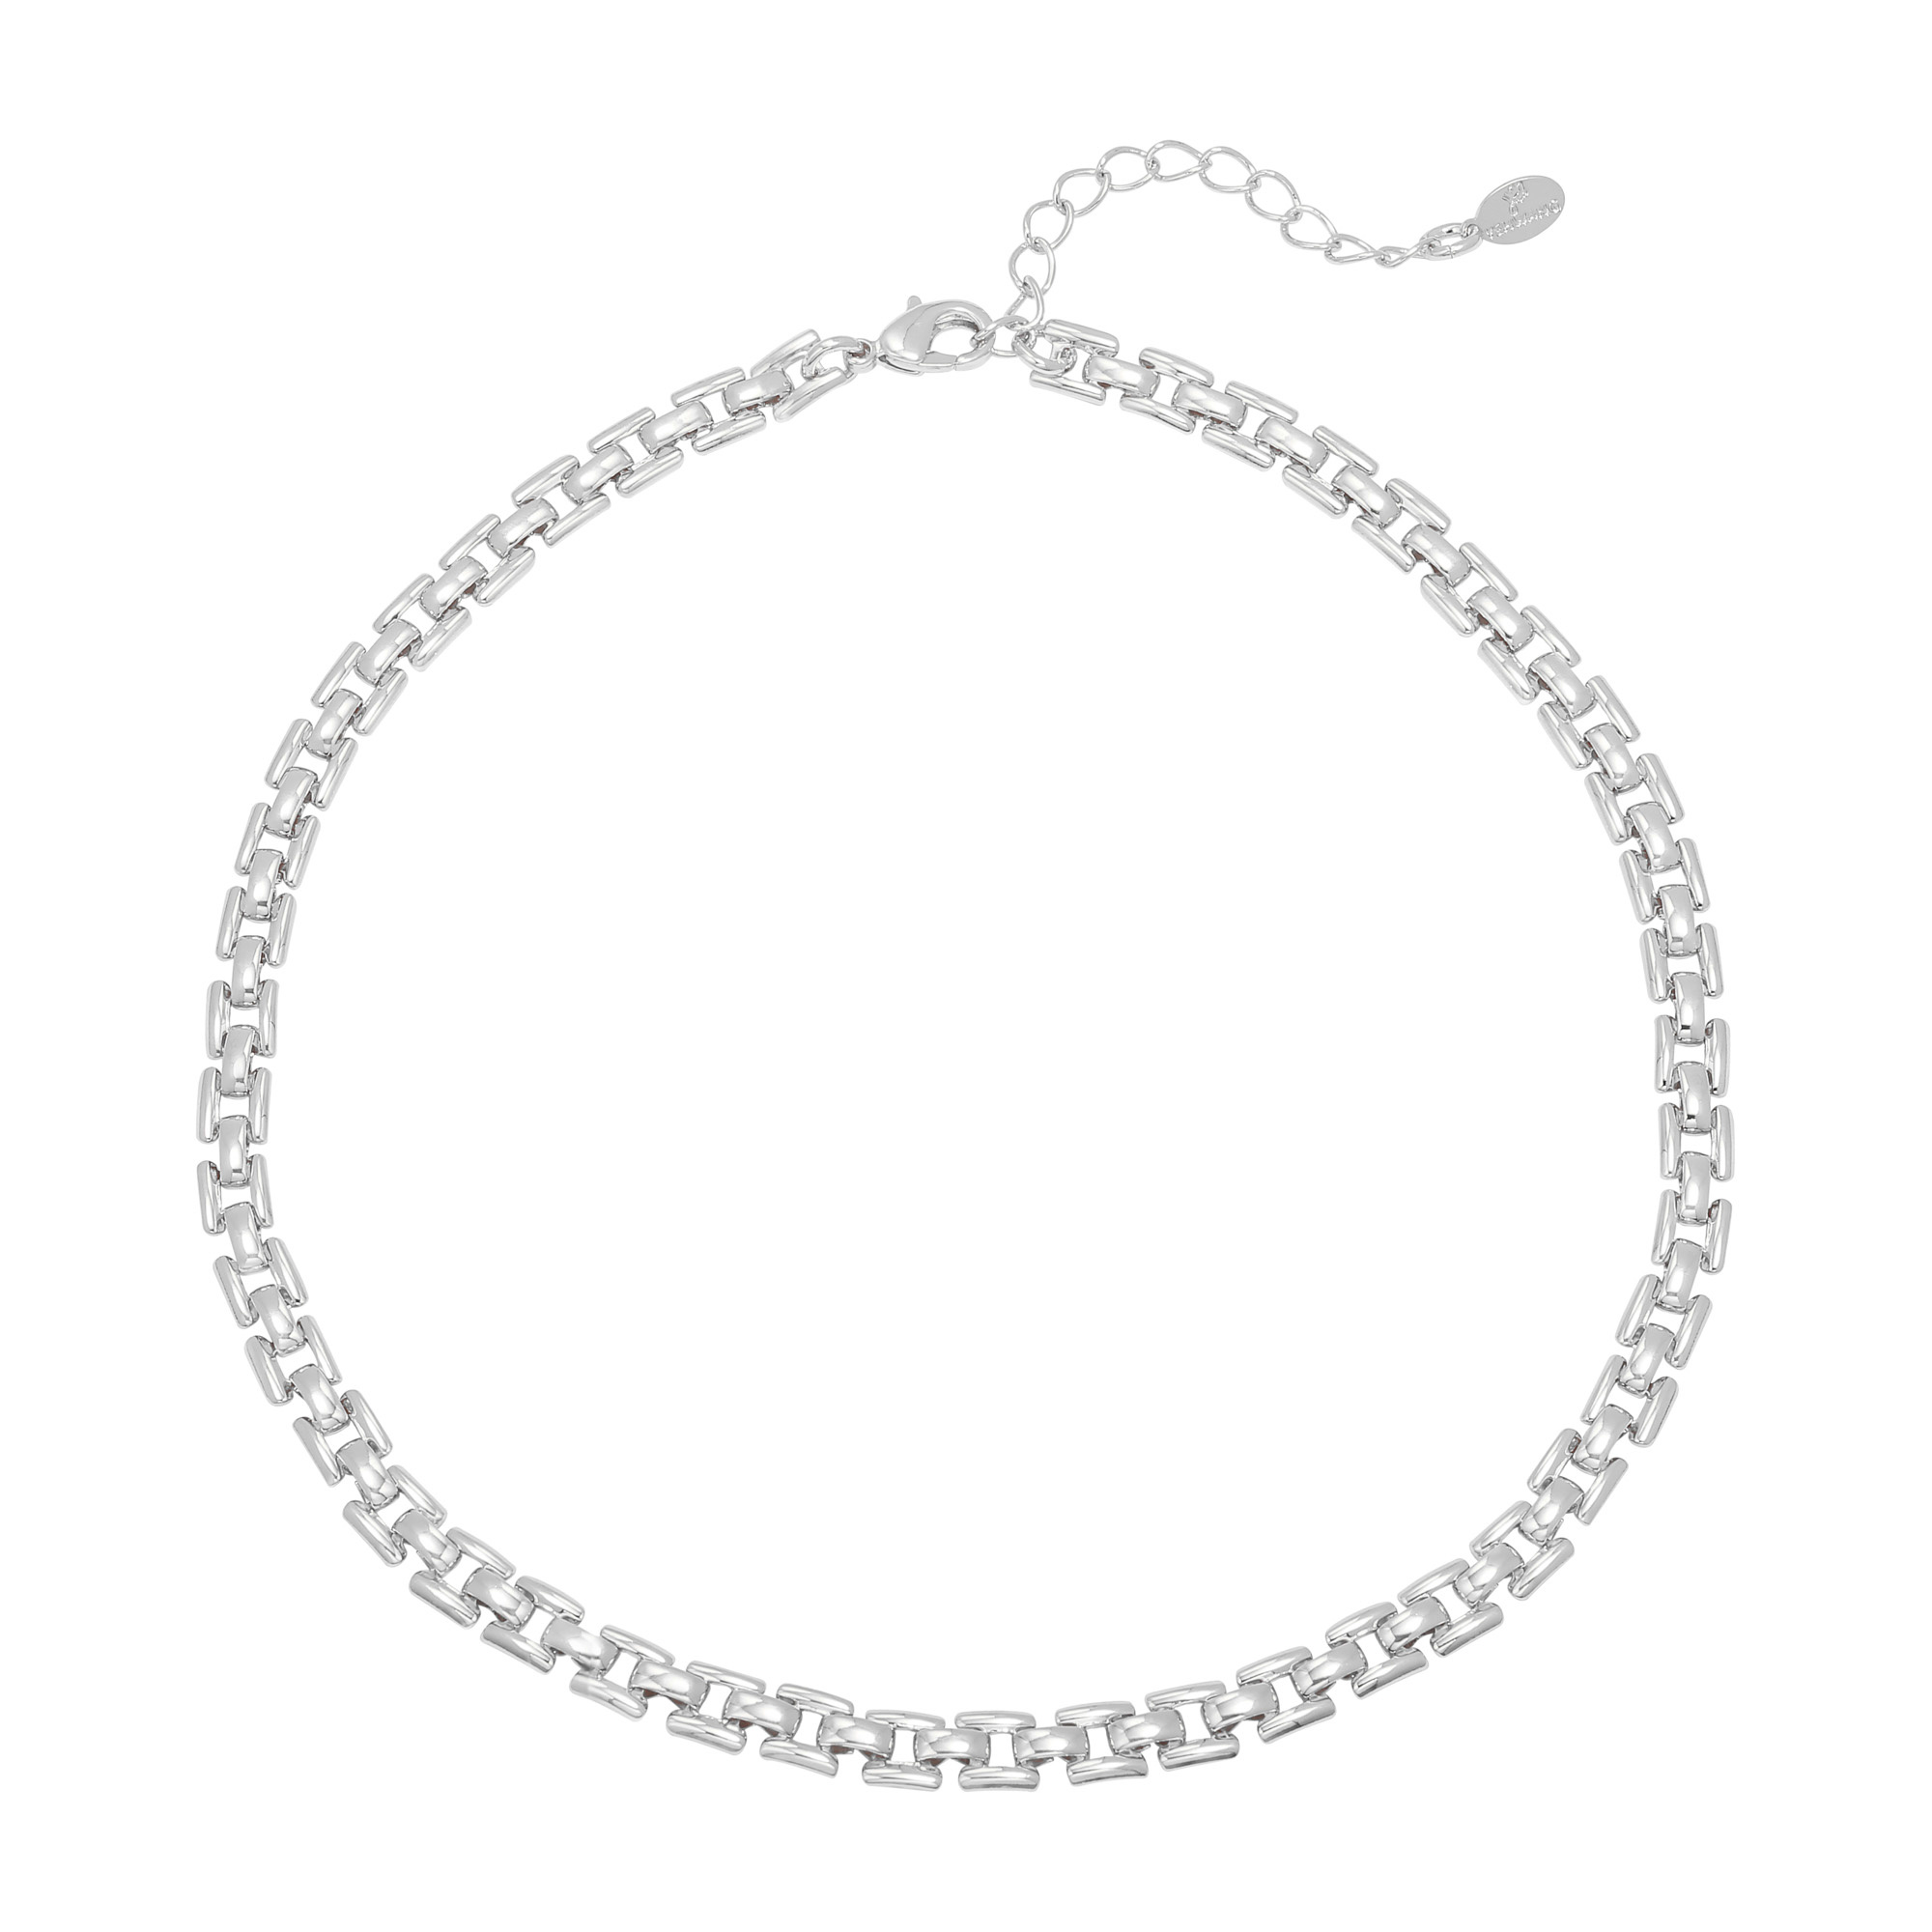 KETTING SQUARE CHAIN ZILVER